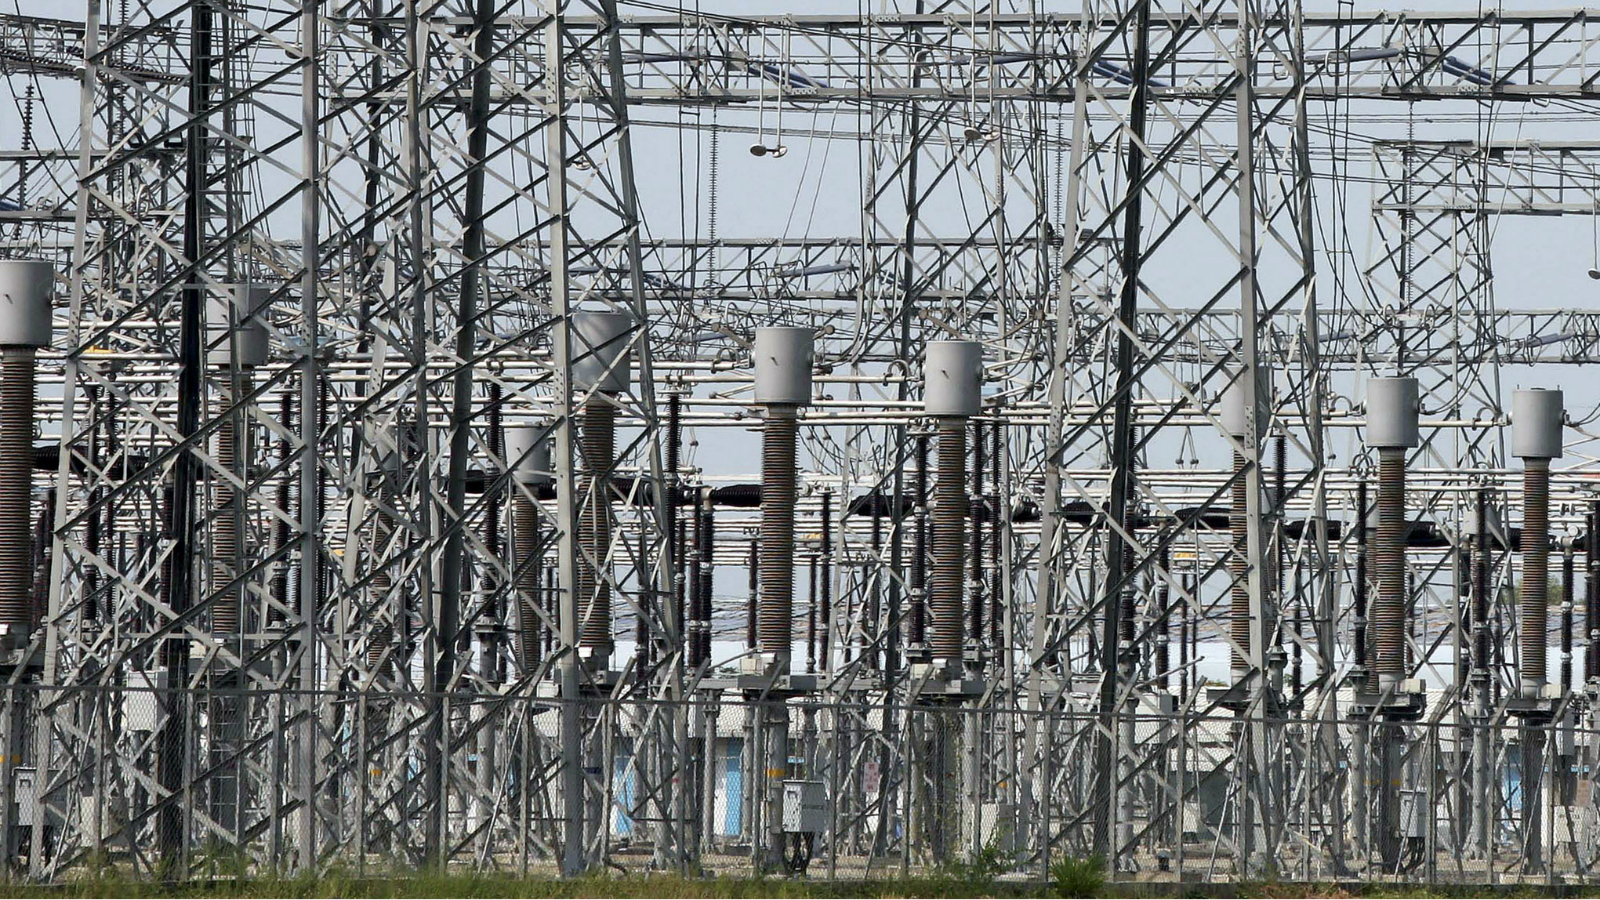 Power transmission lines are seen inside the complex of Sujen Mega Power Project of Torrent Power, at Kamrej village, about 275 km (171 miles) south from the western Indian city of Ahmedabad September 30, 2009. India's power shortfall is expected to widen to 12.6 percent in the current fiscal year ending in March from 11.9 percent last year.